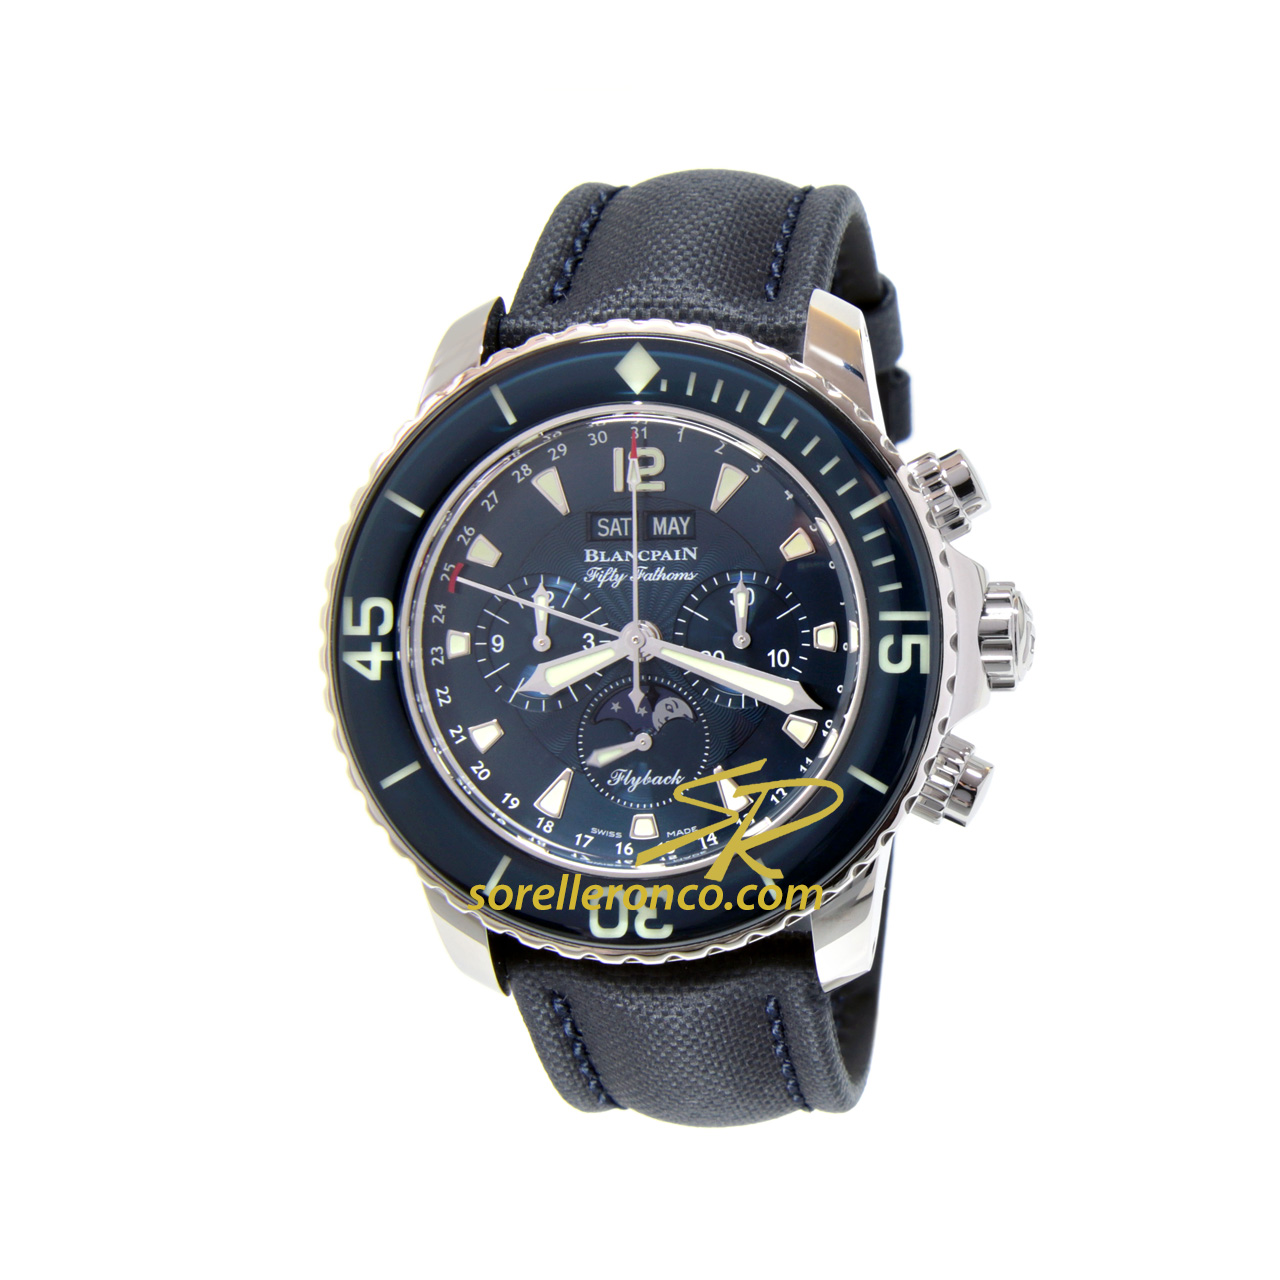 Fifty Fathoms Cronografo flyback